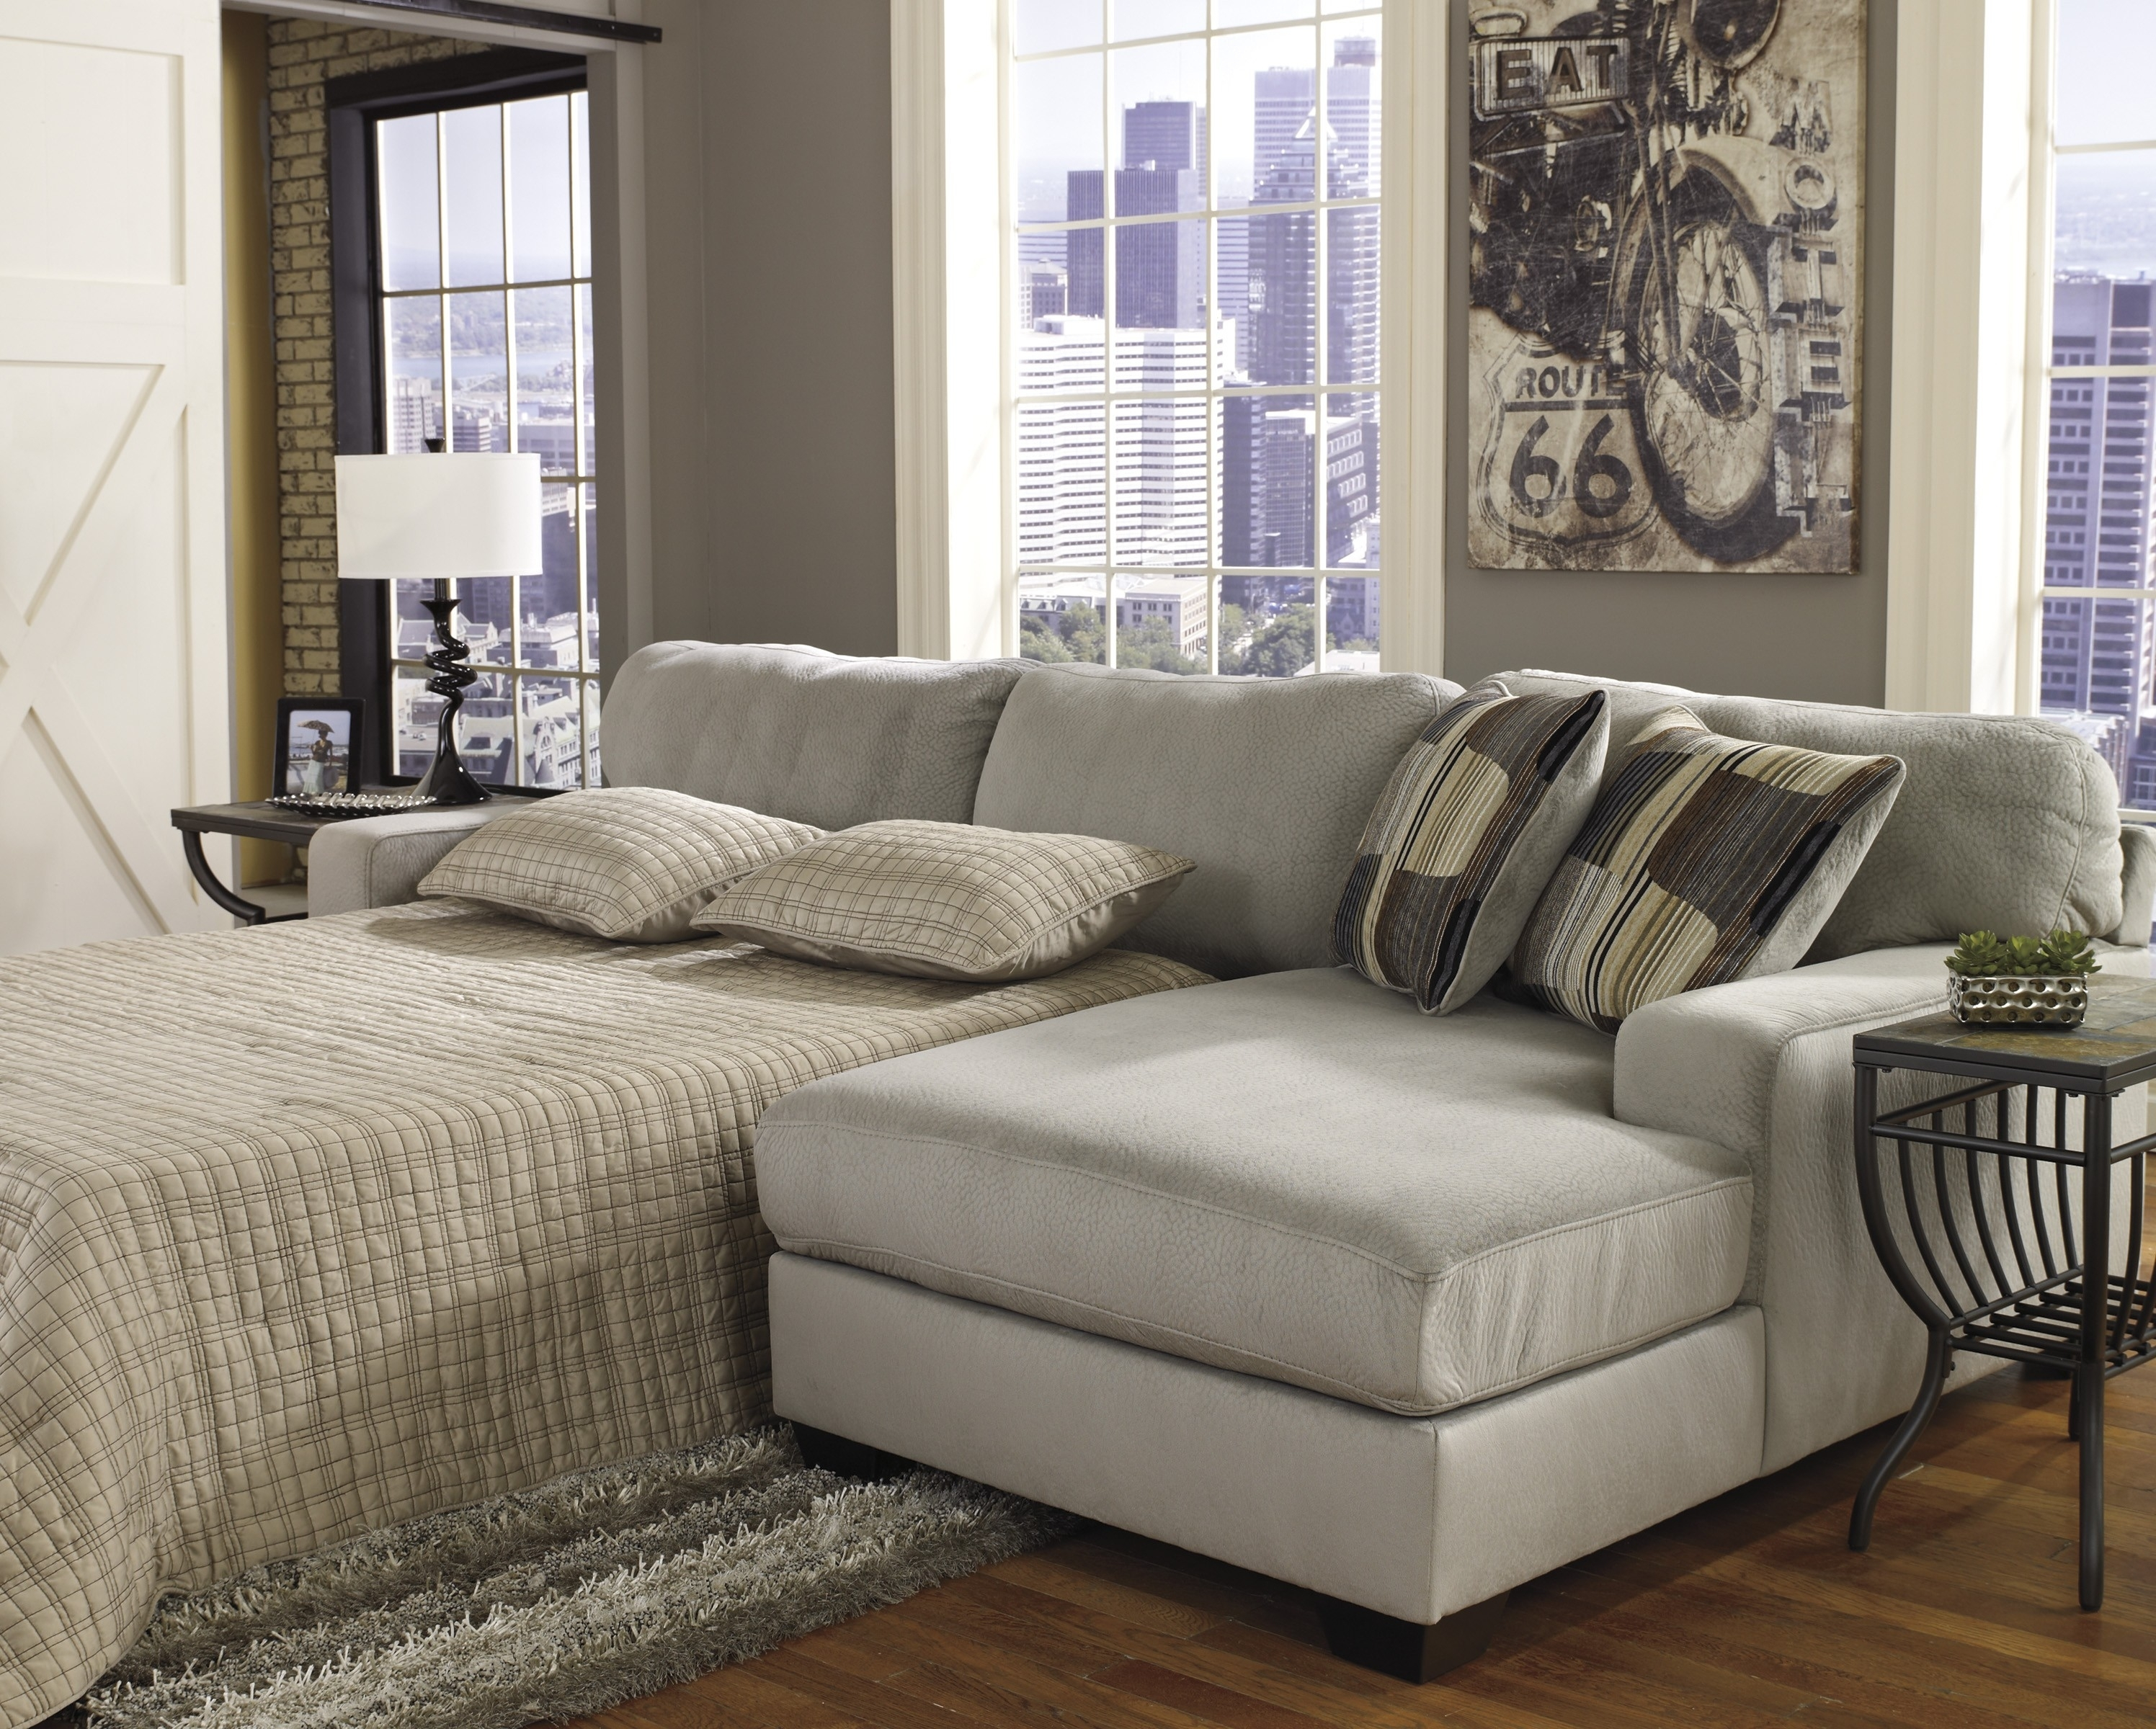 Sectional Sofas Under 1000 Within Widely Used Furniture : Best Sofas Under 1000 Best Sofas Under 1000' Best (View 15 of 20)